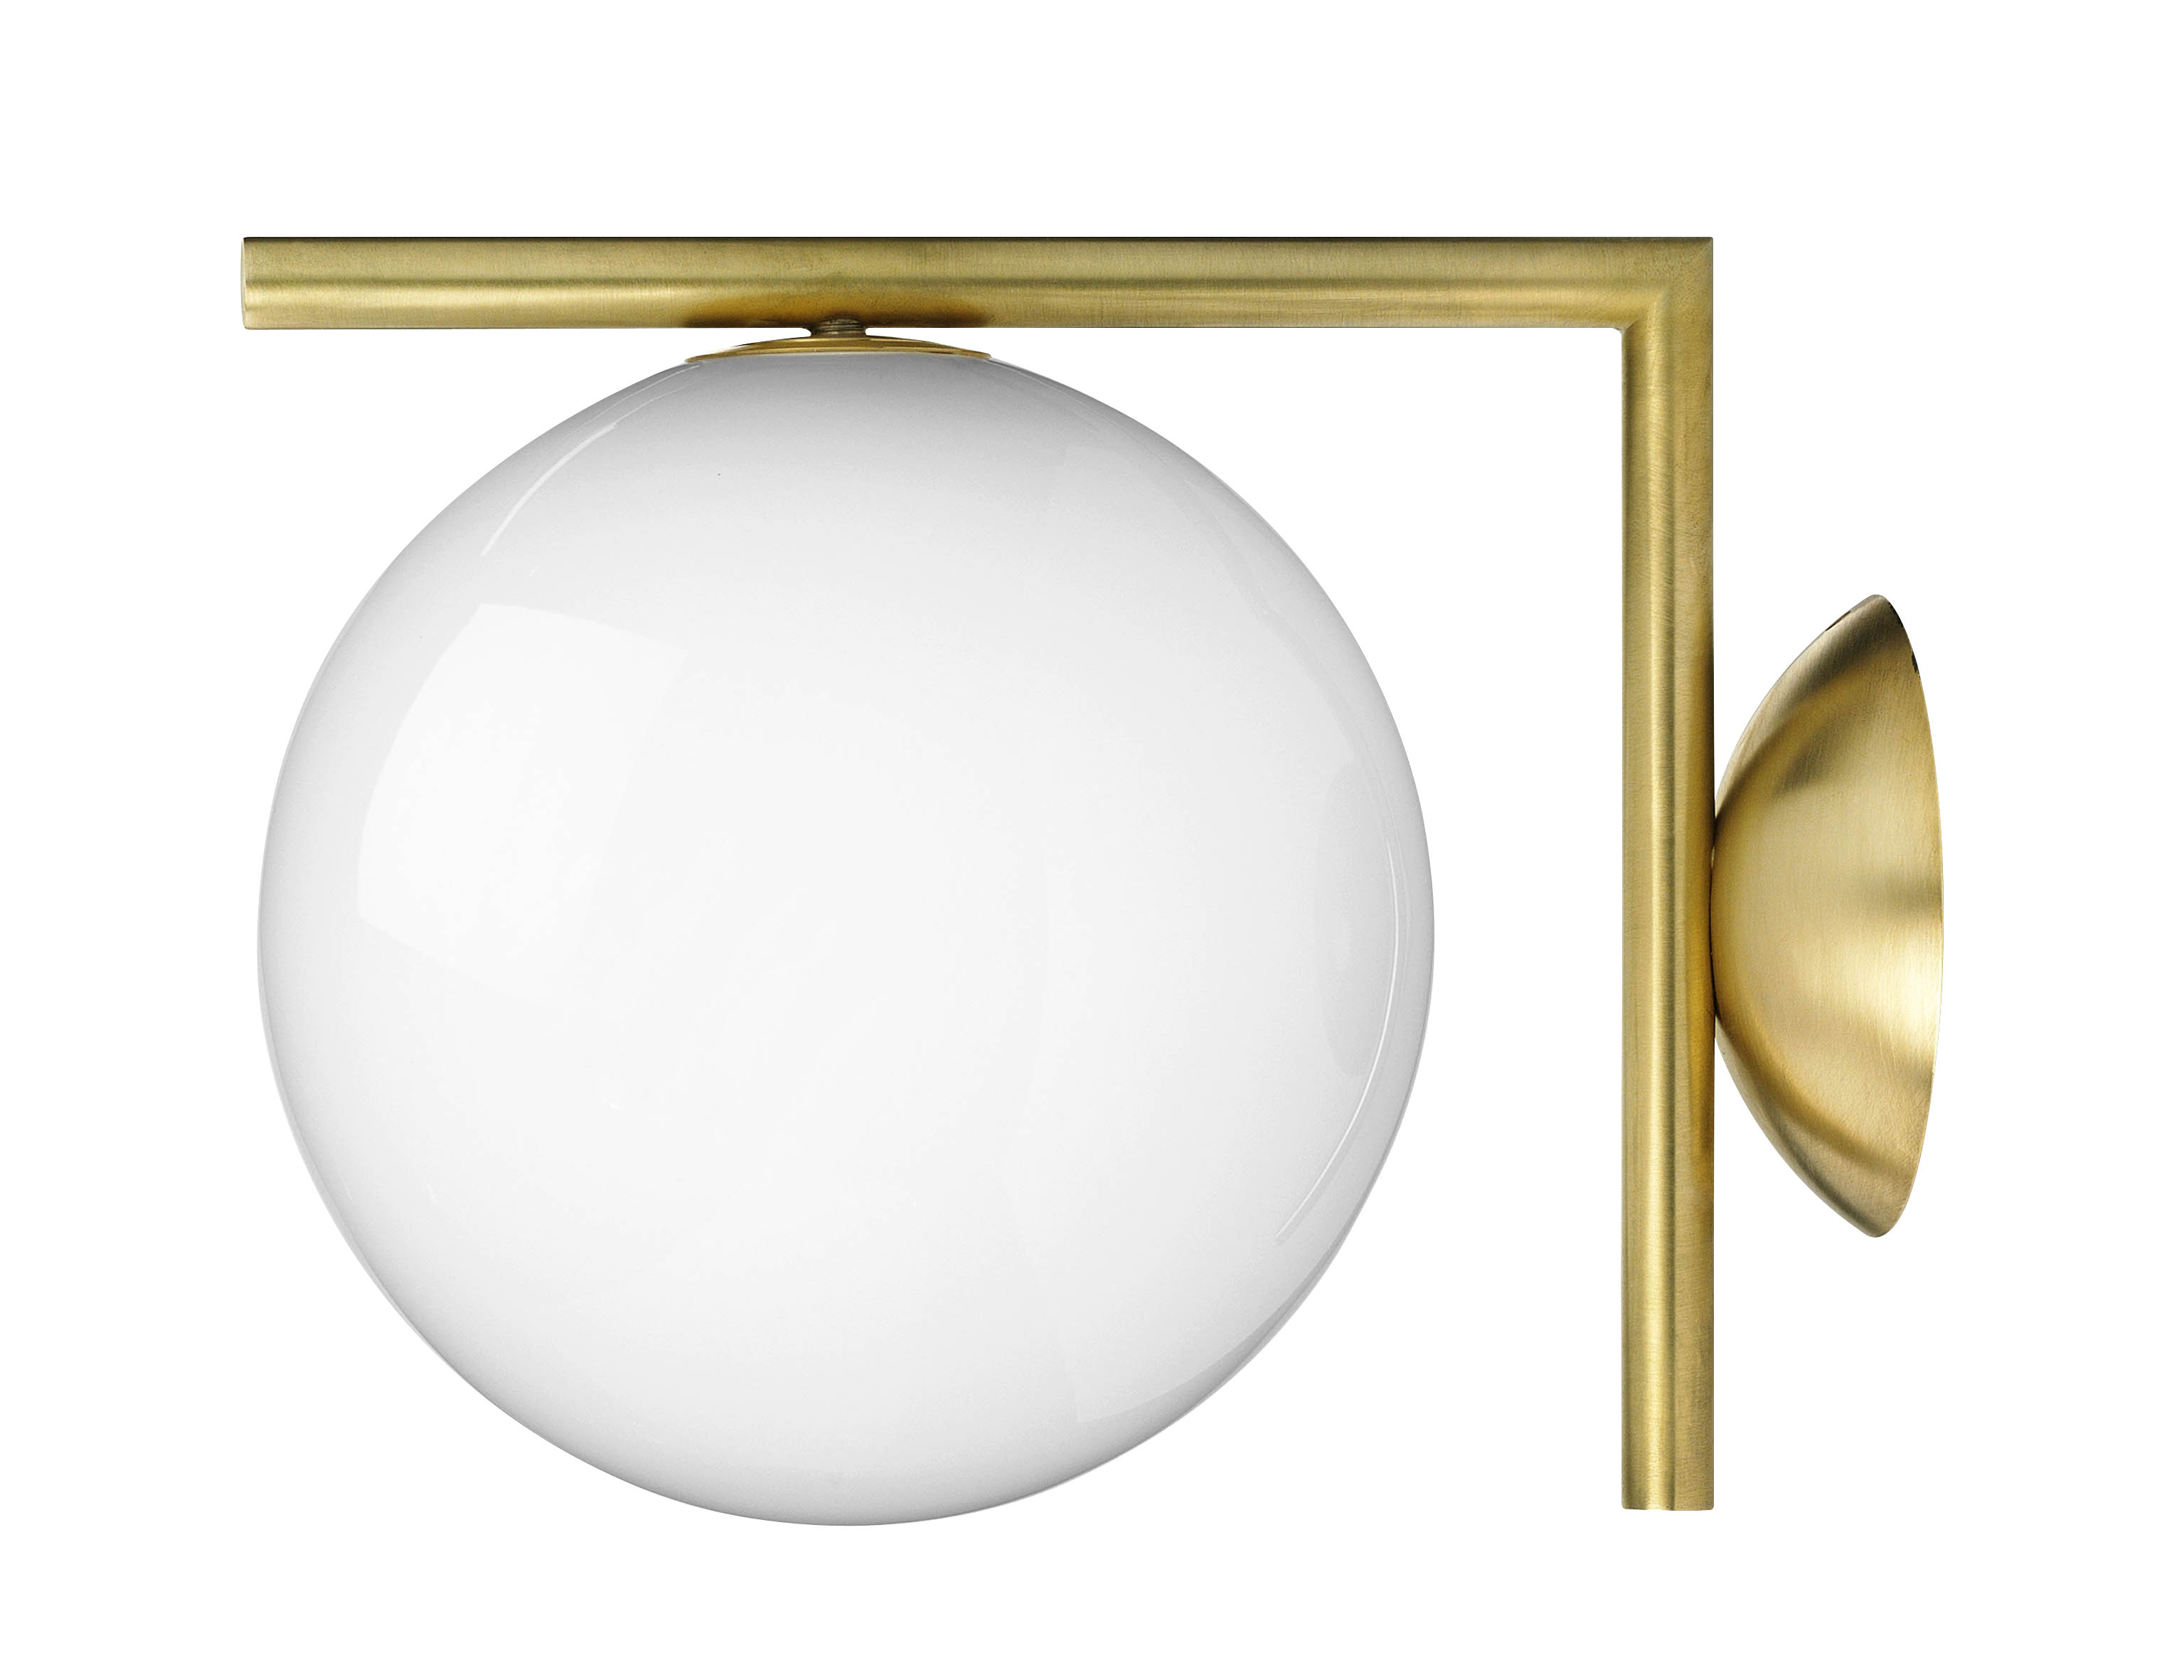 IC W1 Wall light by Flos